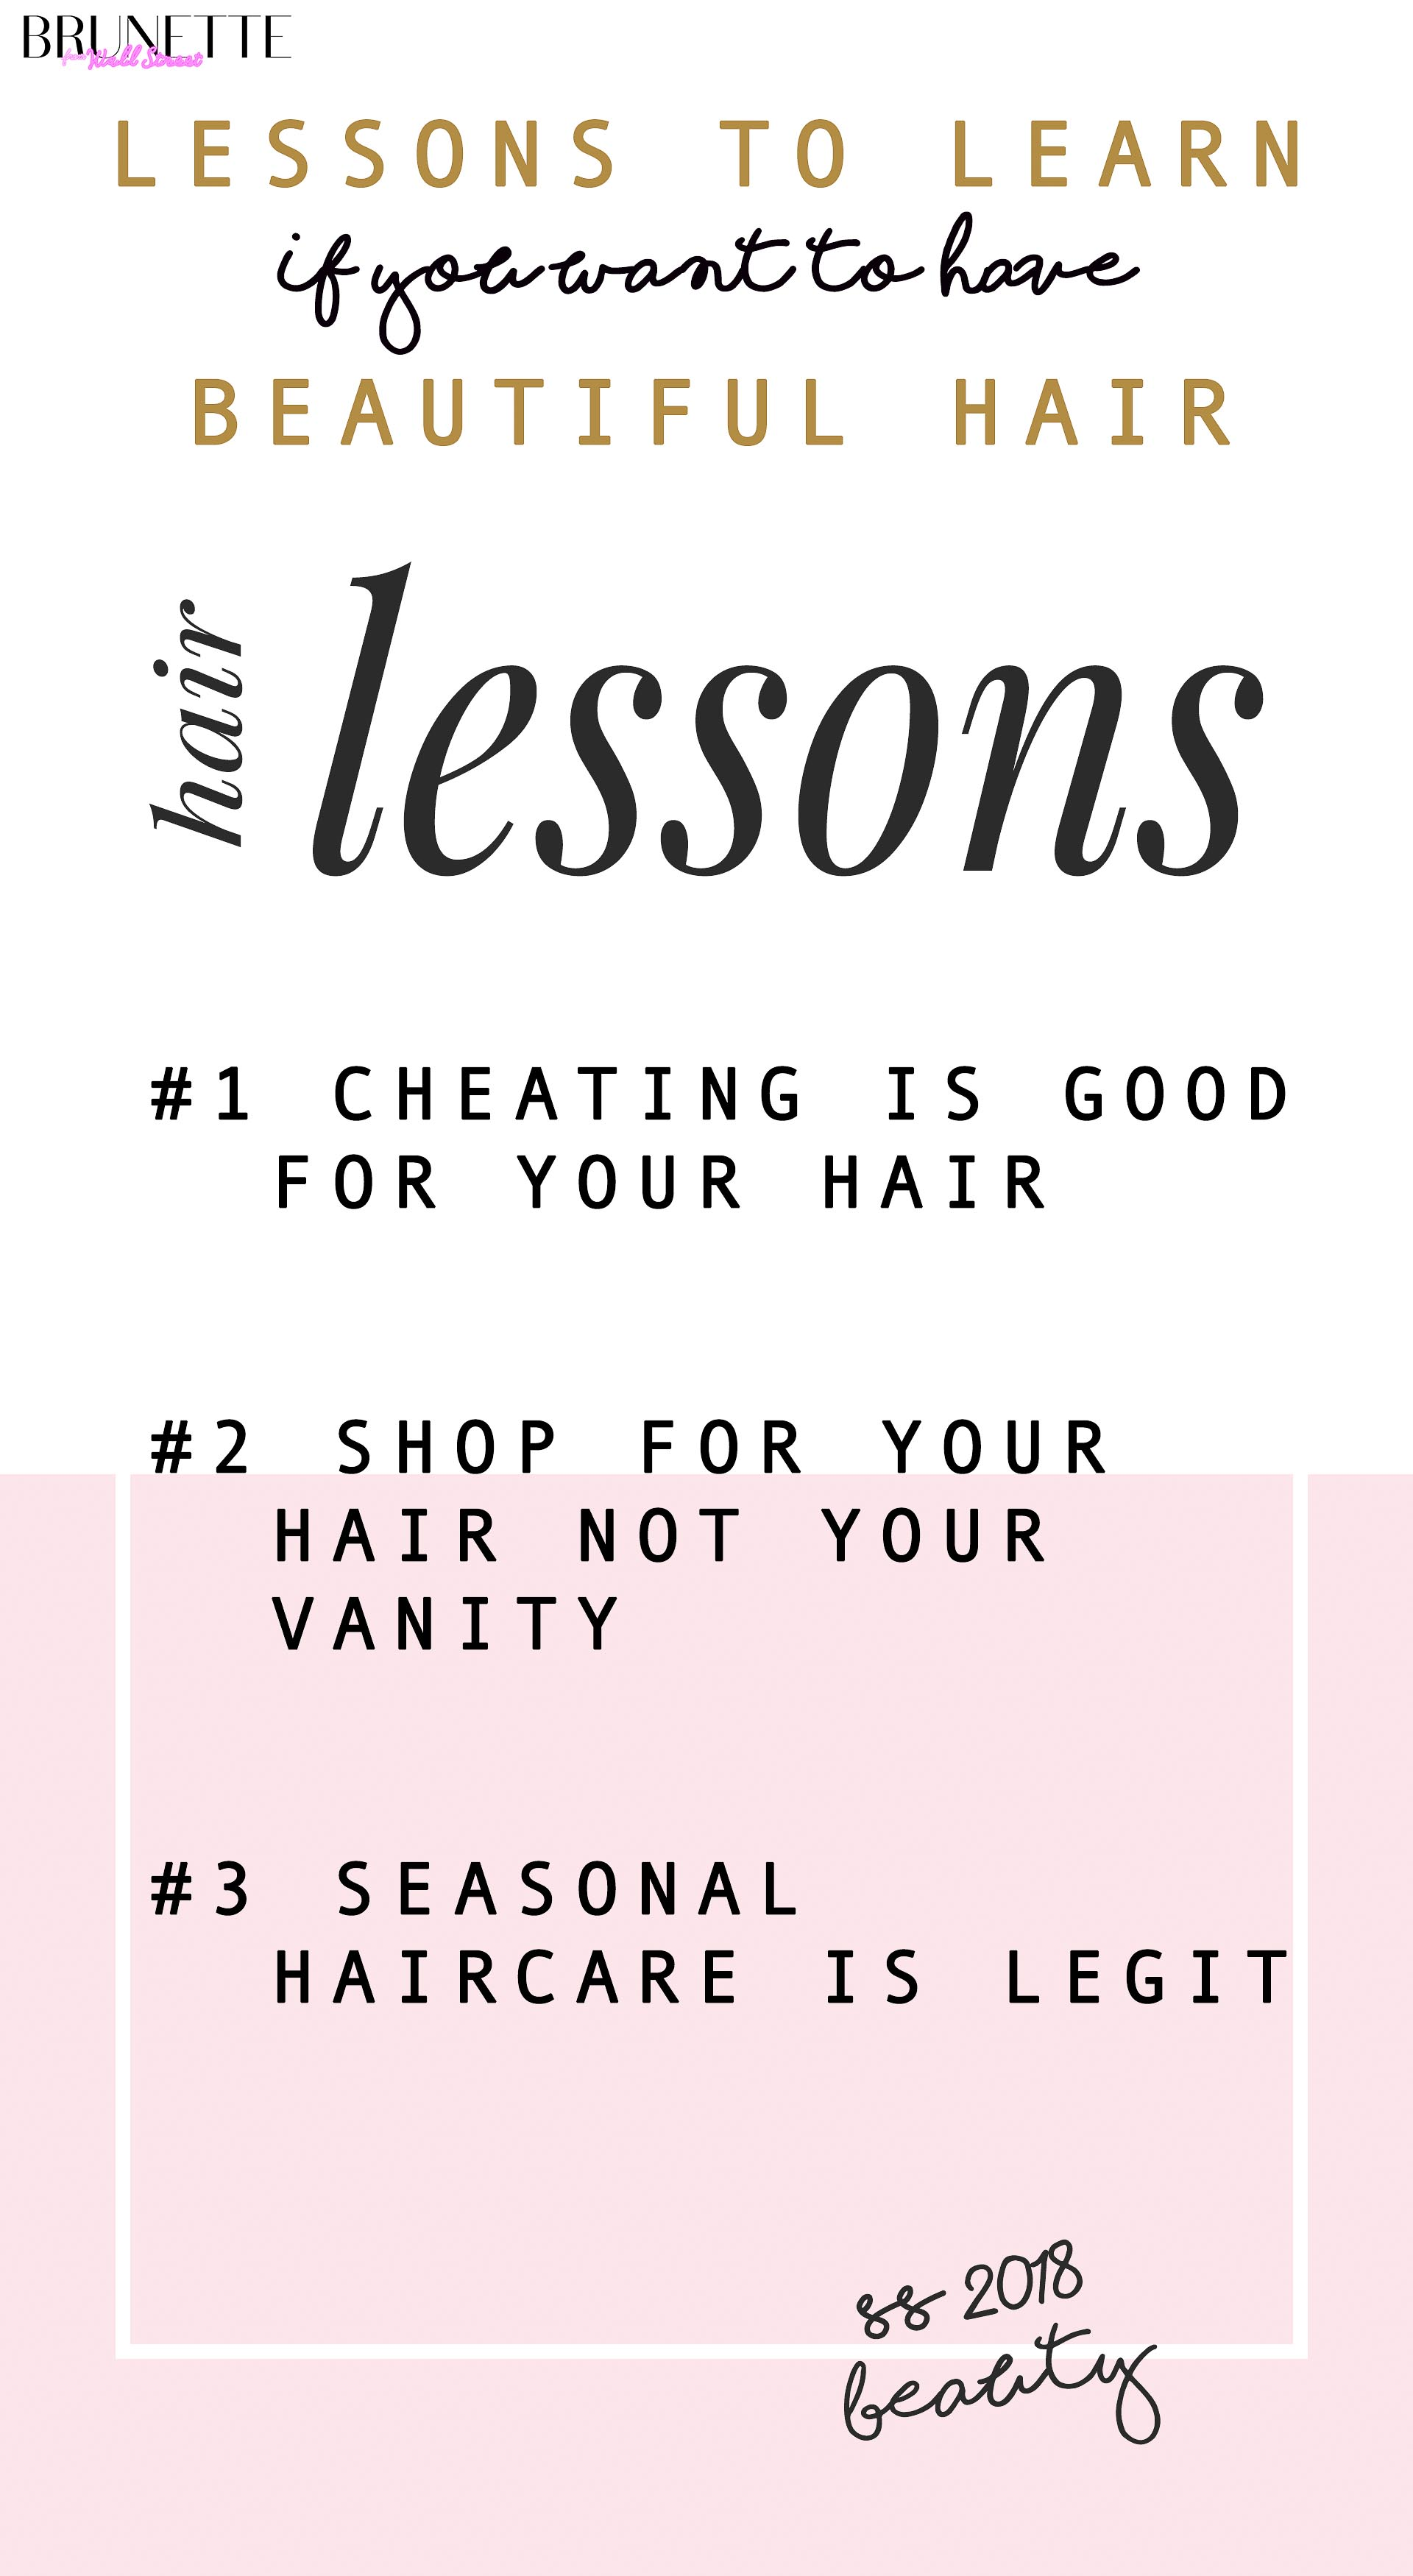 list of Lessons to learn if you want beautiful hair